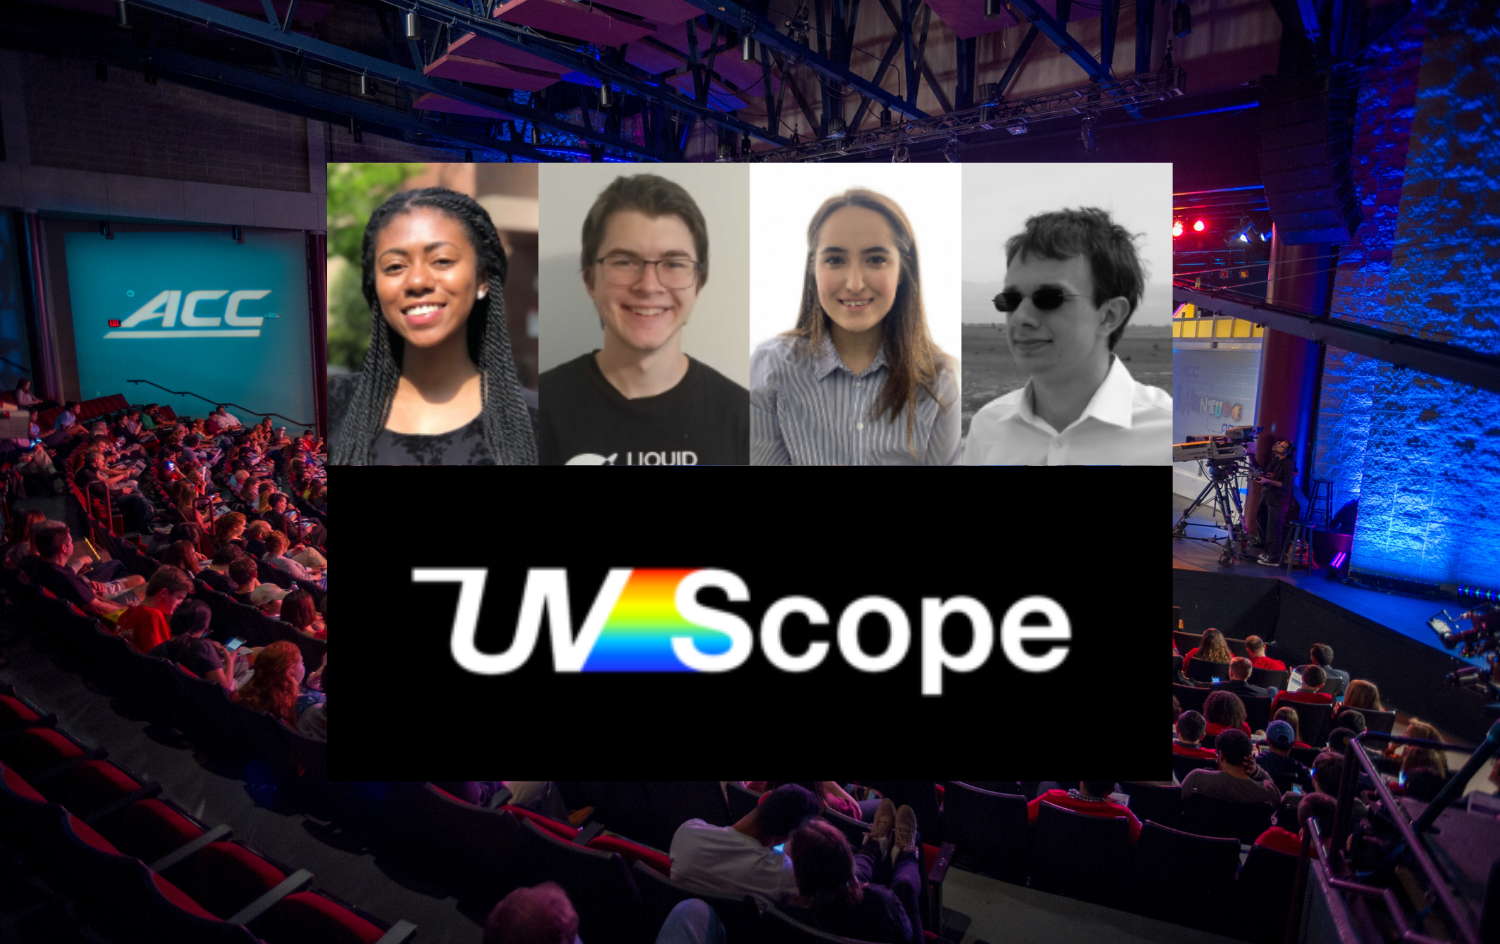 ACCIP 2021 Team, UV Scope